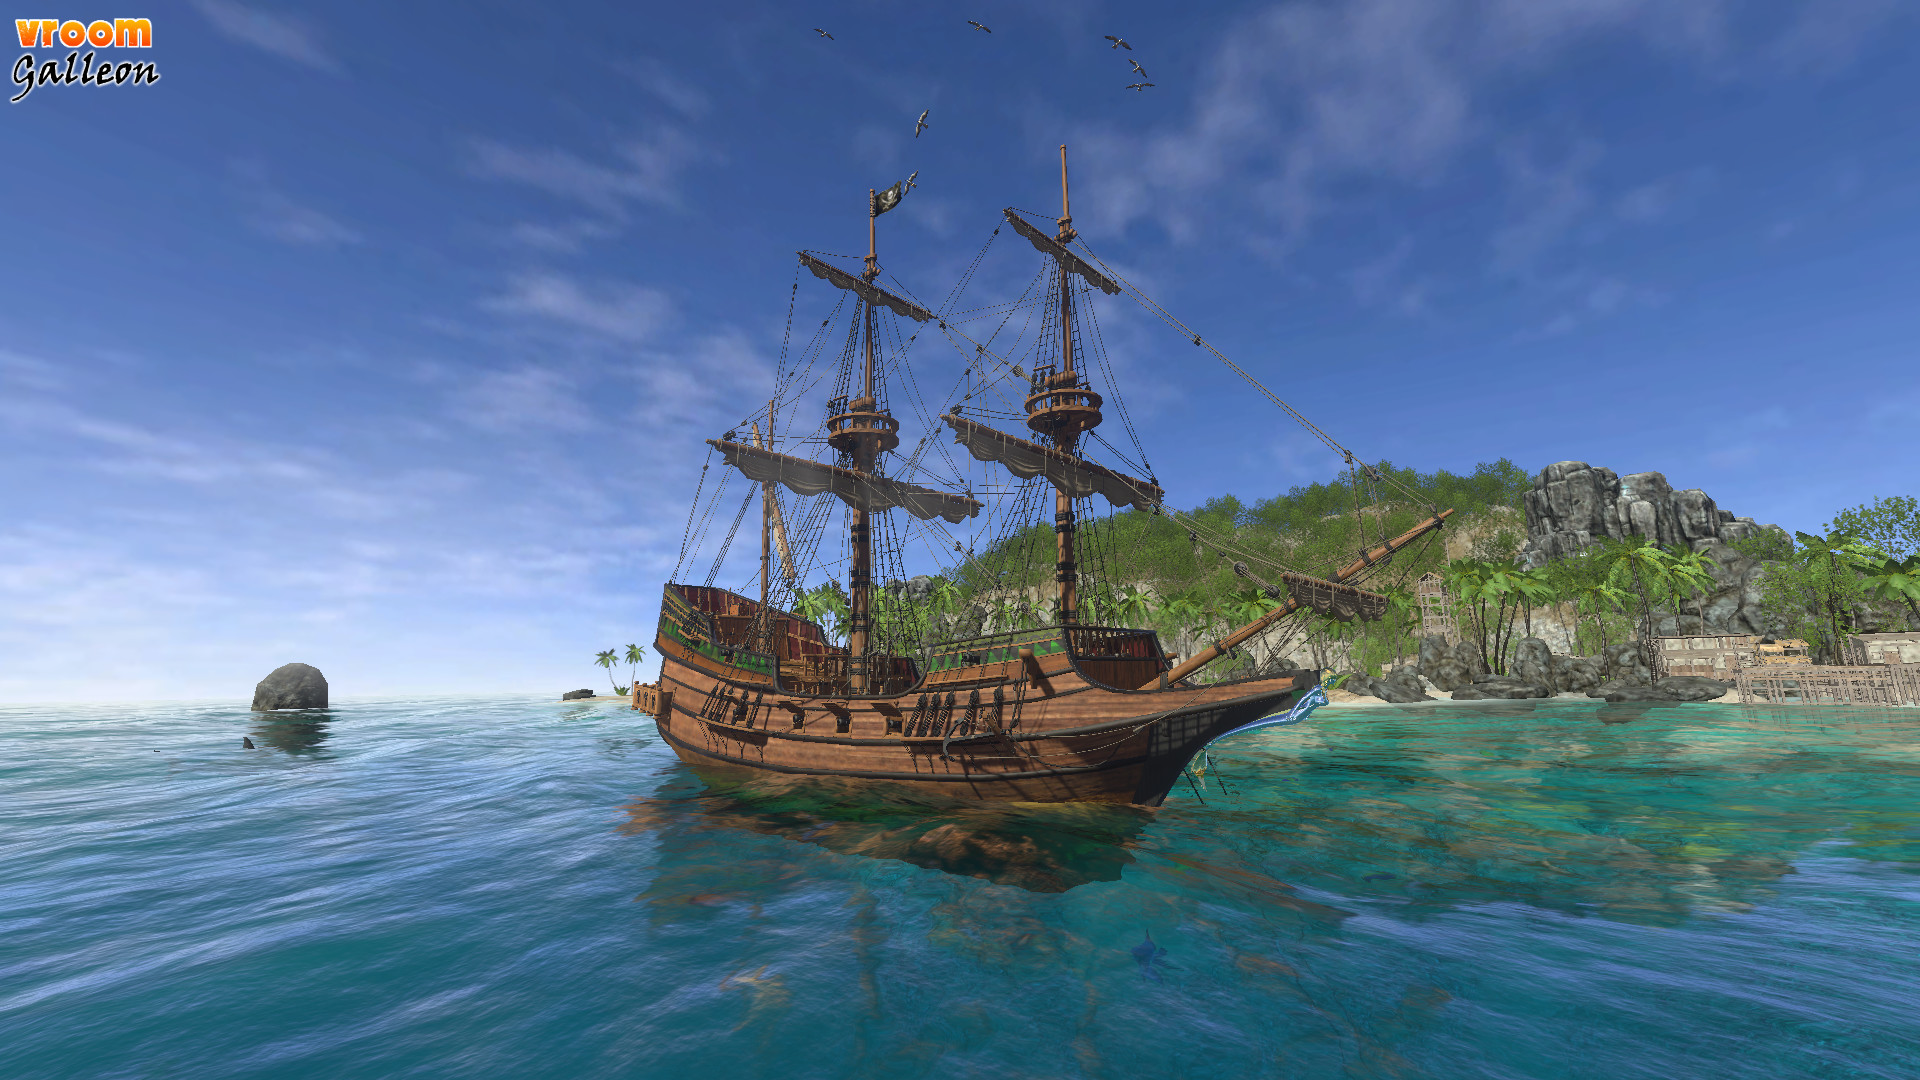 vroom galleon on steam